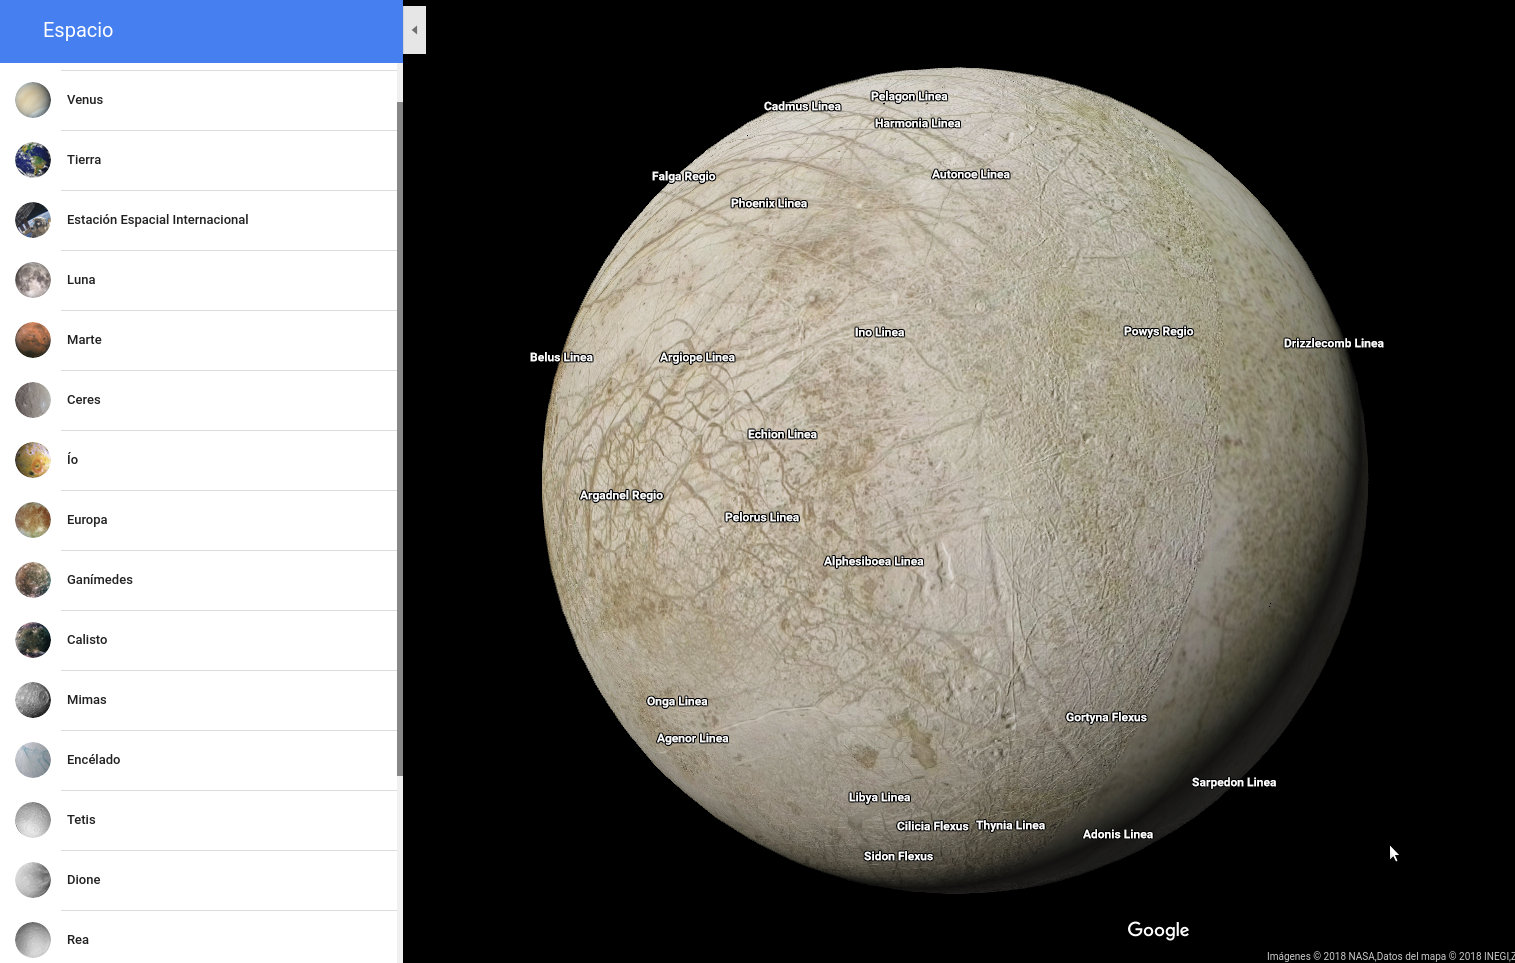 google maps nasa with Explorar Los Pla As Lunas Sistema Solar on Photsed10 also View together with Nachtelijke Aarde Bekijken Met Google Maps besides Nasa Lies Intro To Flat Earth Research History And Conspriacy Part Ii additionally Photsed10.